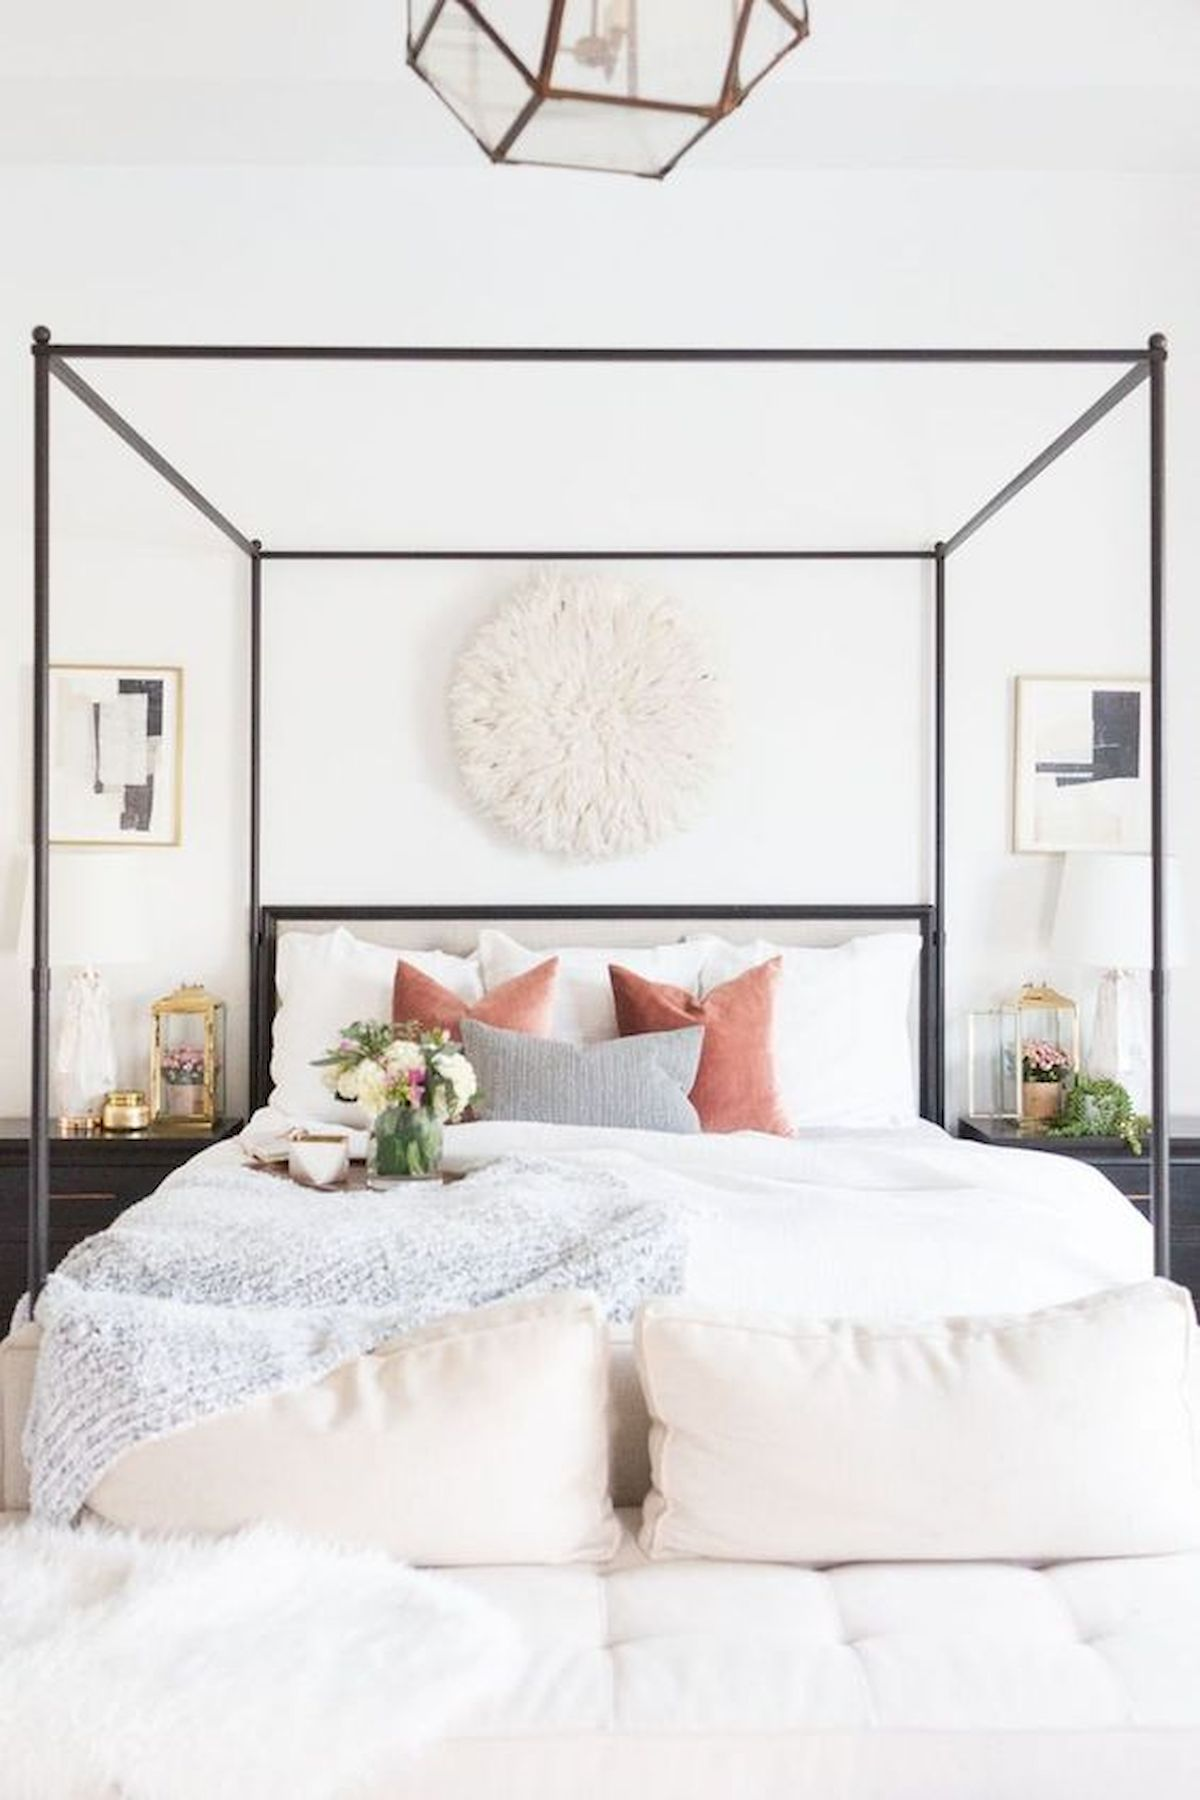 44 Awesome White Master Bedroom Design and Decor Ideas For Any Home Design (32)